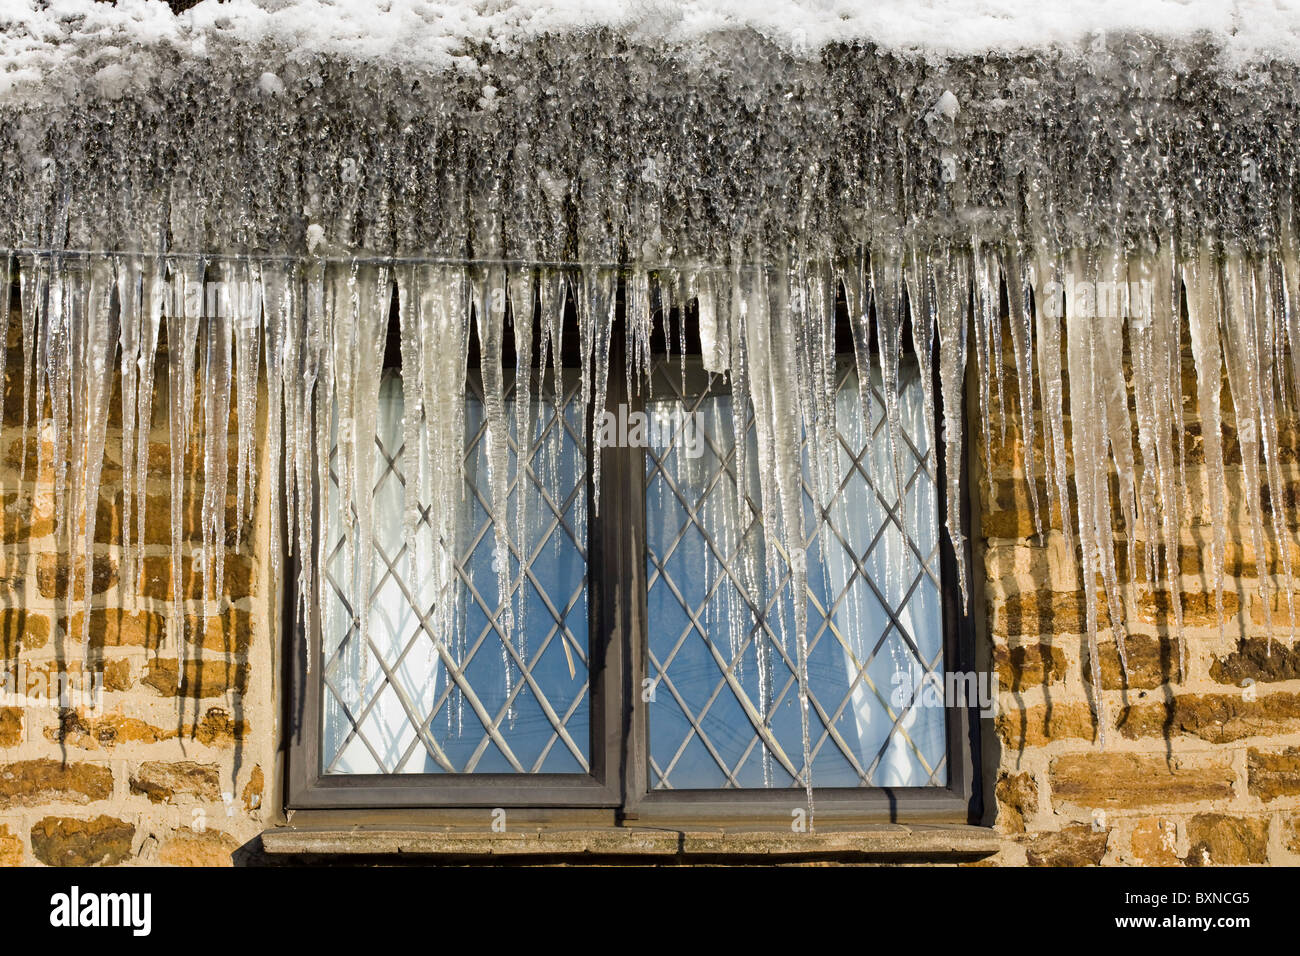 A Cottage with Giant Icicles on it - Stock Image